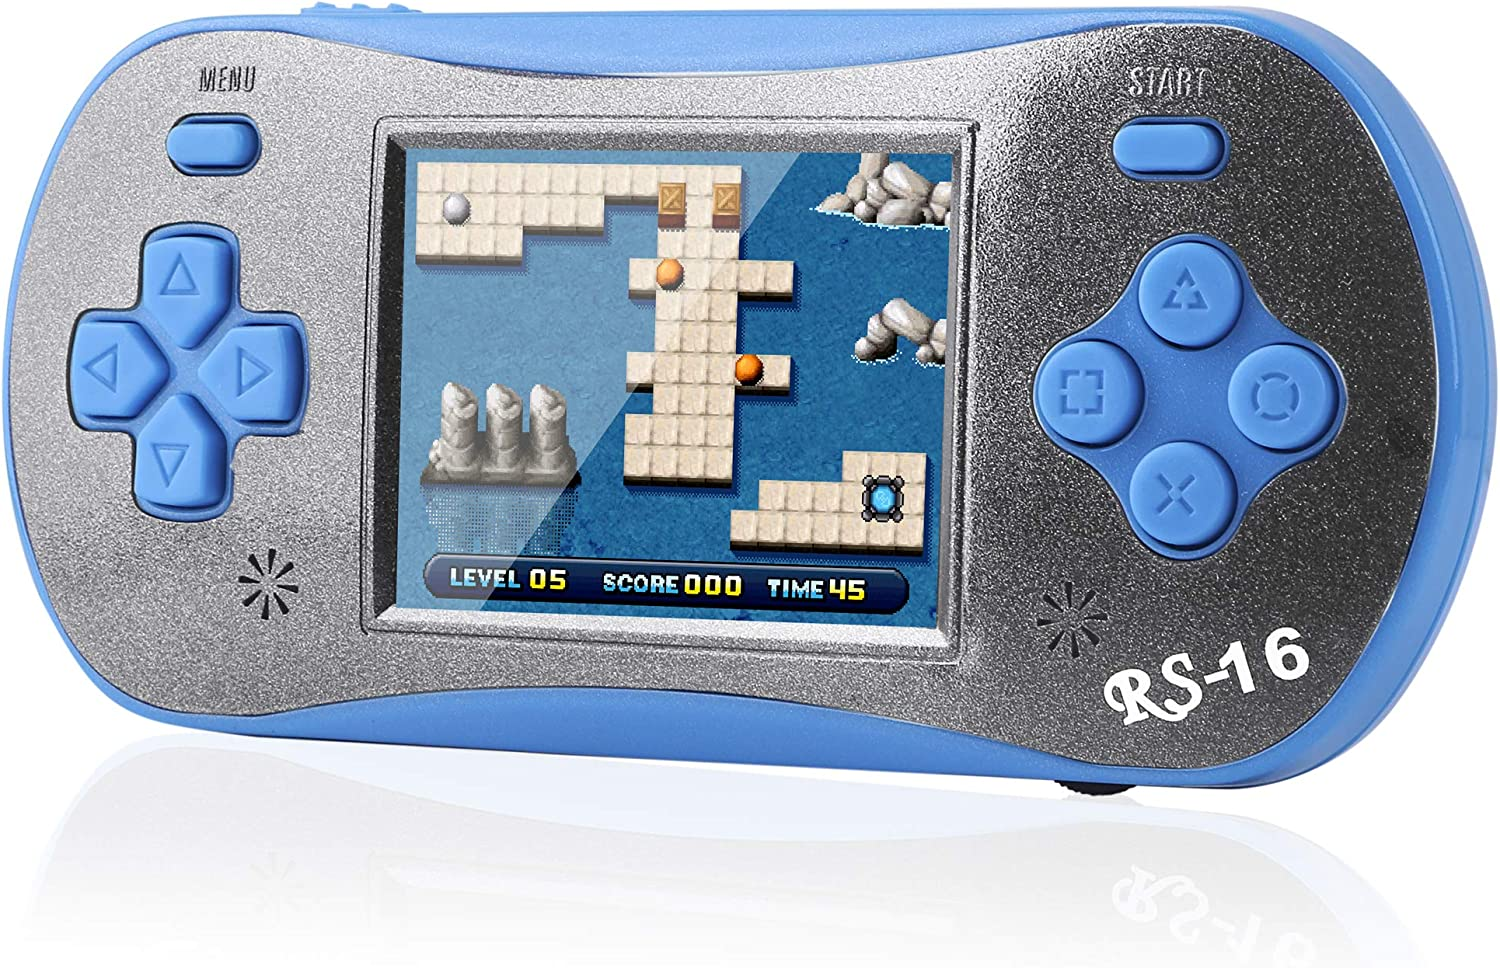 ZFKJ Handheld Games 2.5-inch Color Screen pre-Installed 260 Classic Retro Video Games No WiFi Children's Adult Electronic Game Consoles Birthday (Green) (Blue)